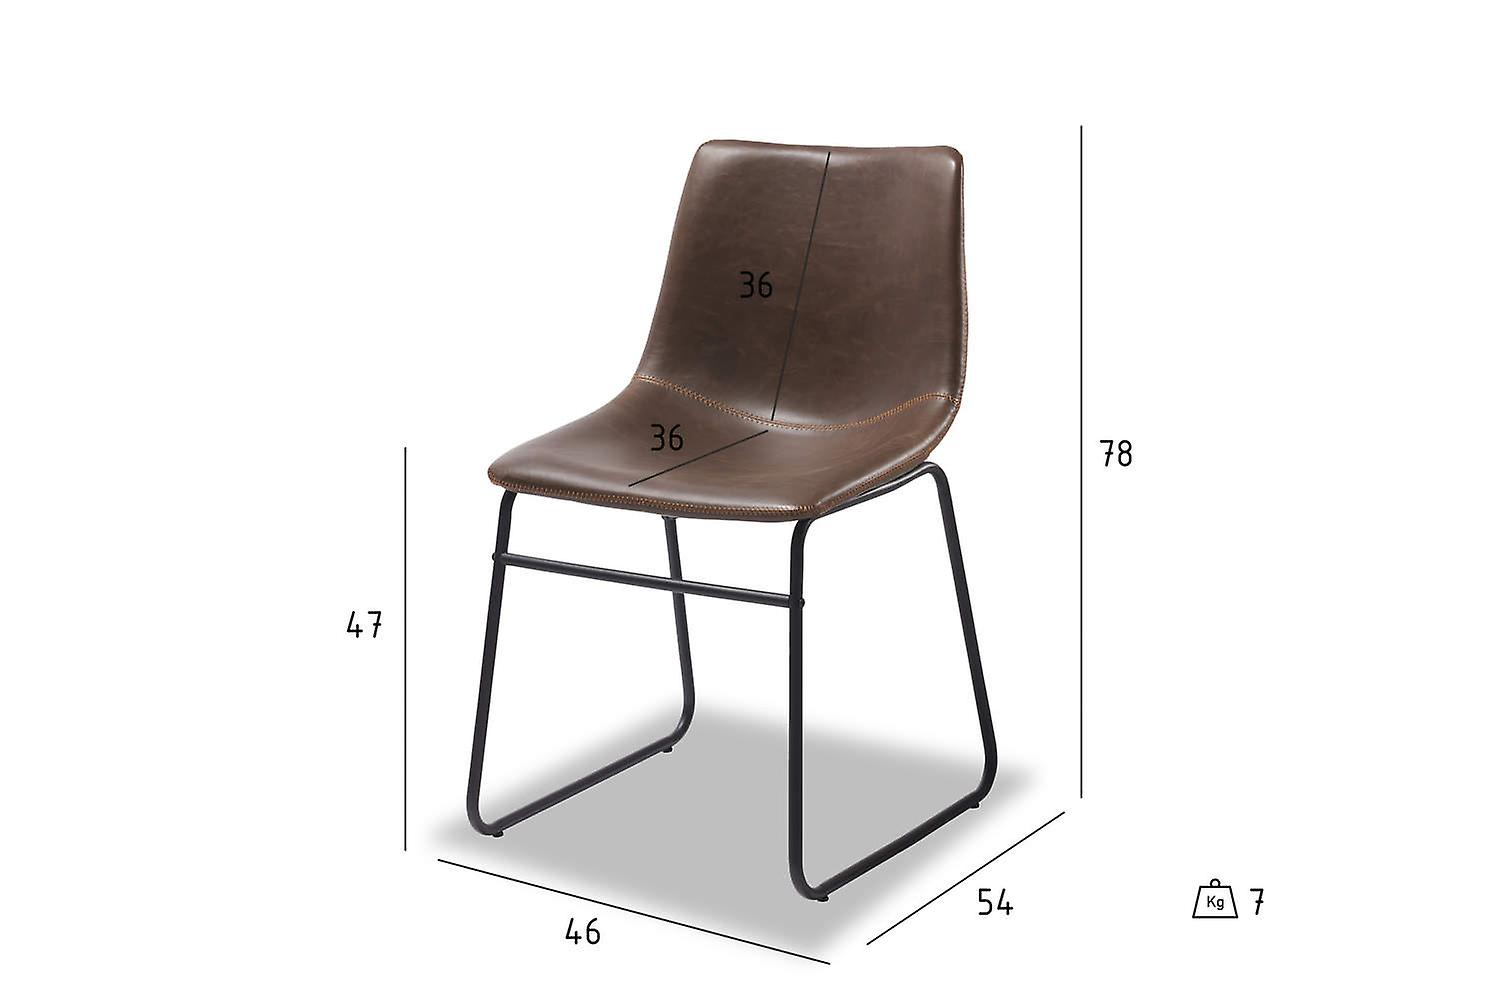 Furnhouse Indiana Dining Chair, Dark Brown, Metal Base, 46x54x78 cm, Set of 2